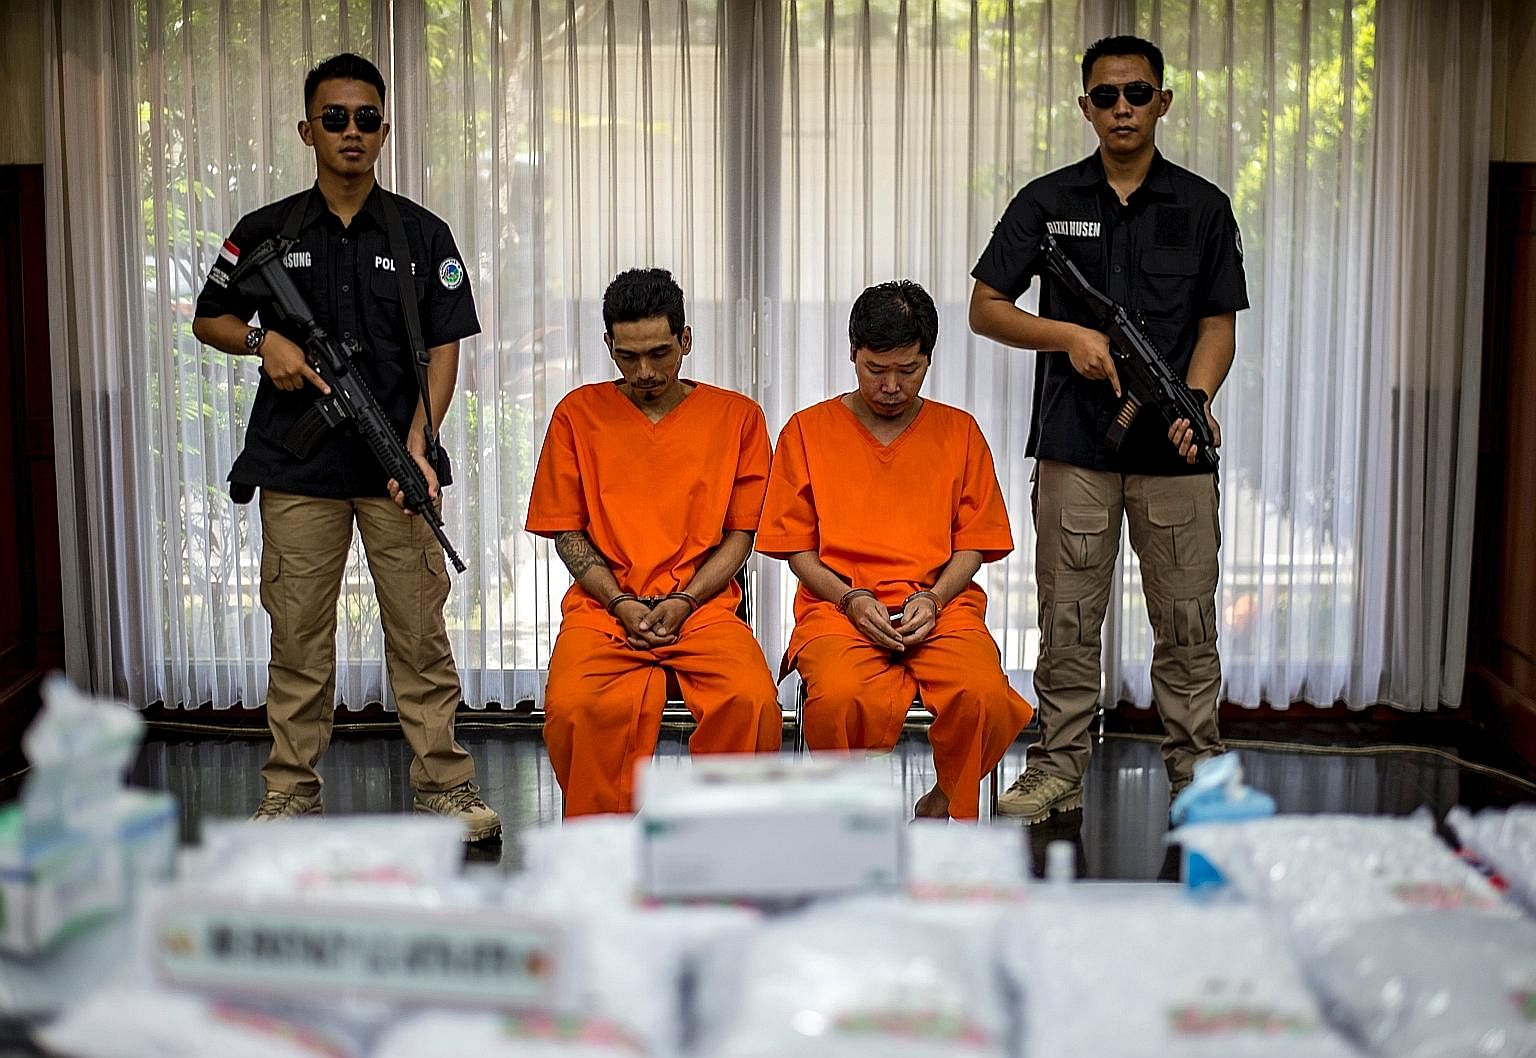 Indonesian police with two suspects after a raid on a warehouse on the outskirts of Jakarta on July 21, where the authorities seized Ecstasy pills. There has been a rise in the trafficking of Ecstasy, heroin, and methamphetamine into Indonesia, and l